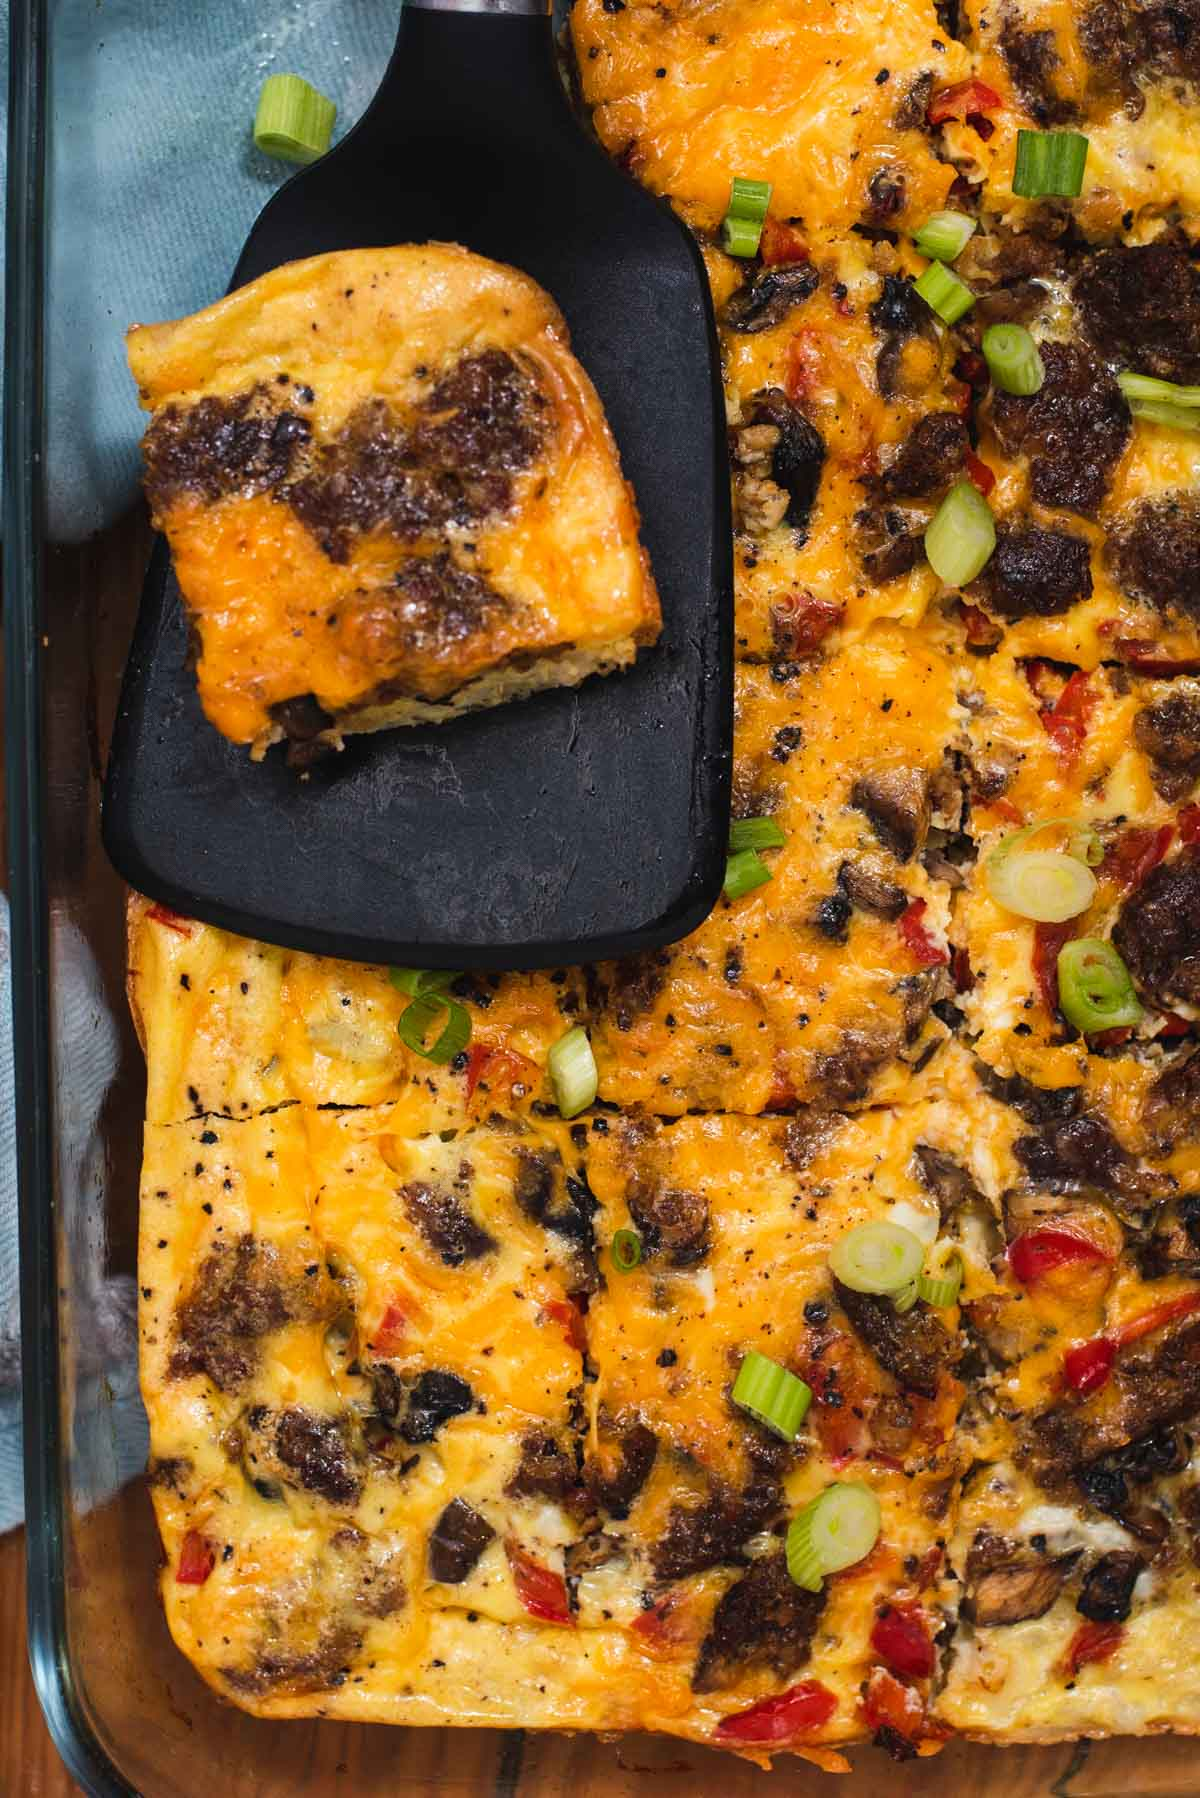 Overhead view of egg casserole with slice of egg casserole resting on a black spatula